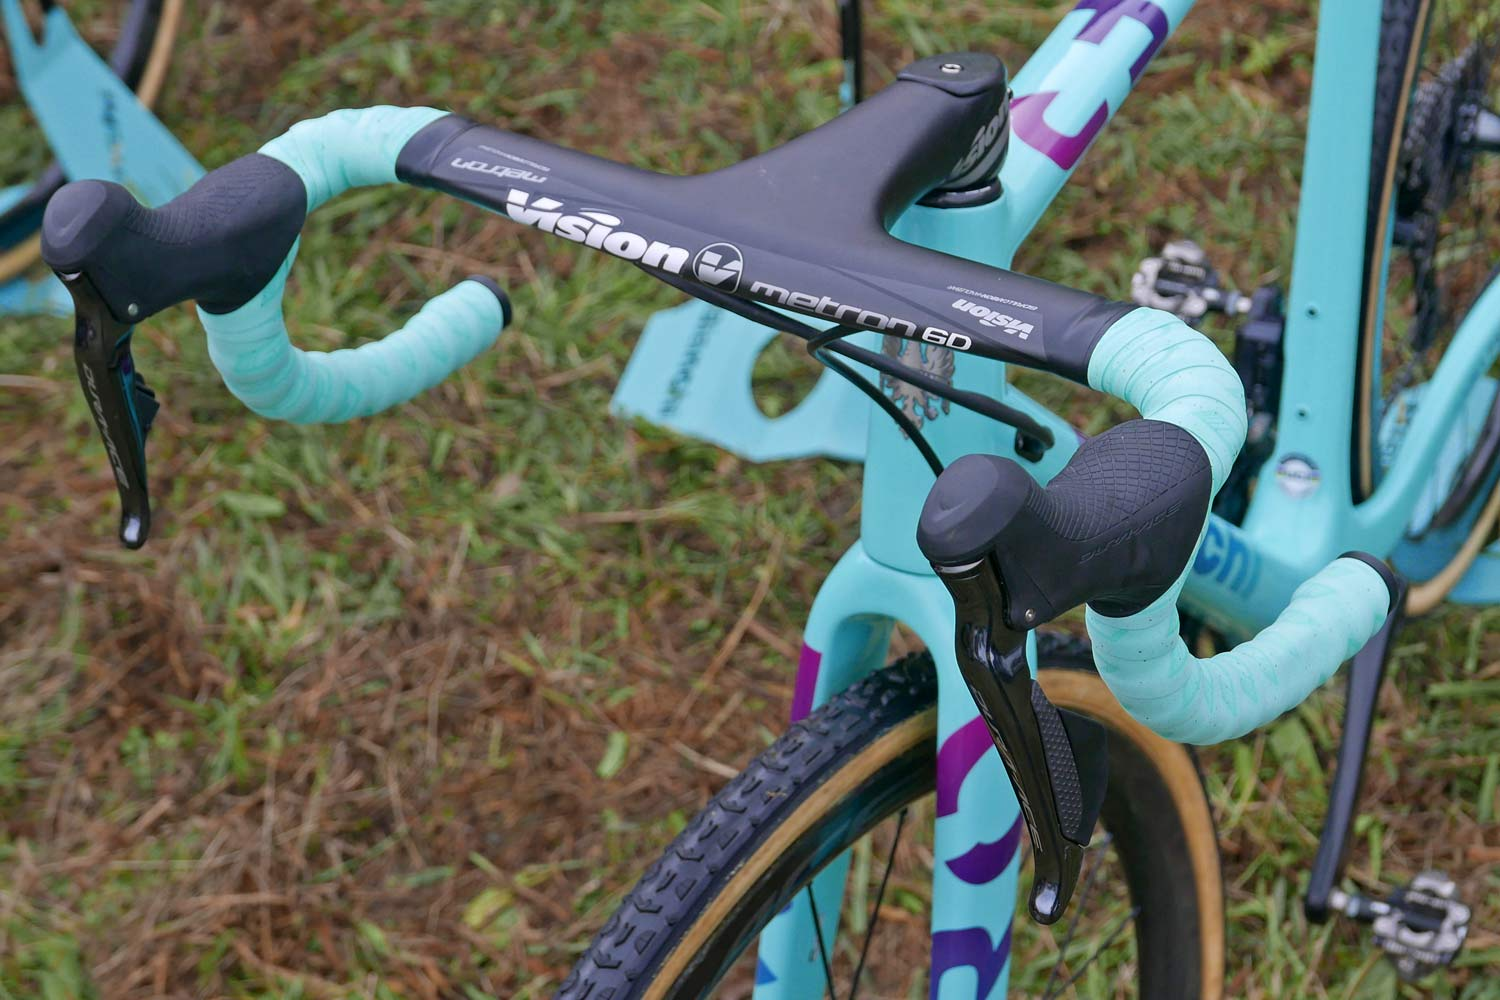 CX Pro Bike Check: Bianchi Zolder Pro carbon cyclocross bike, Wout van Aert at UCI Cyclo-Cross World Cup Tabor,Vision Metron 6D cockpit